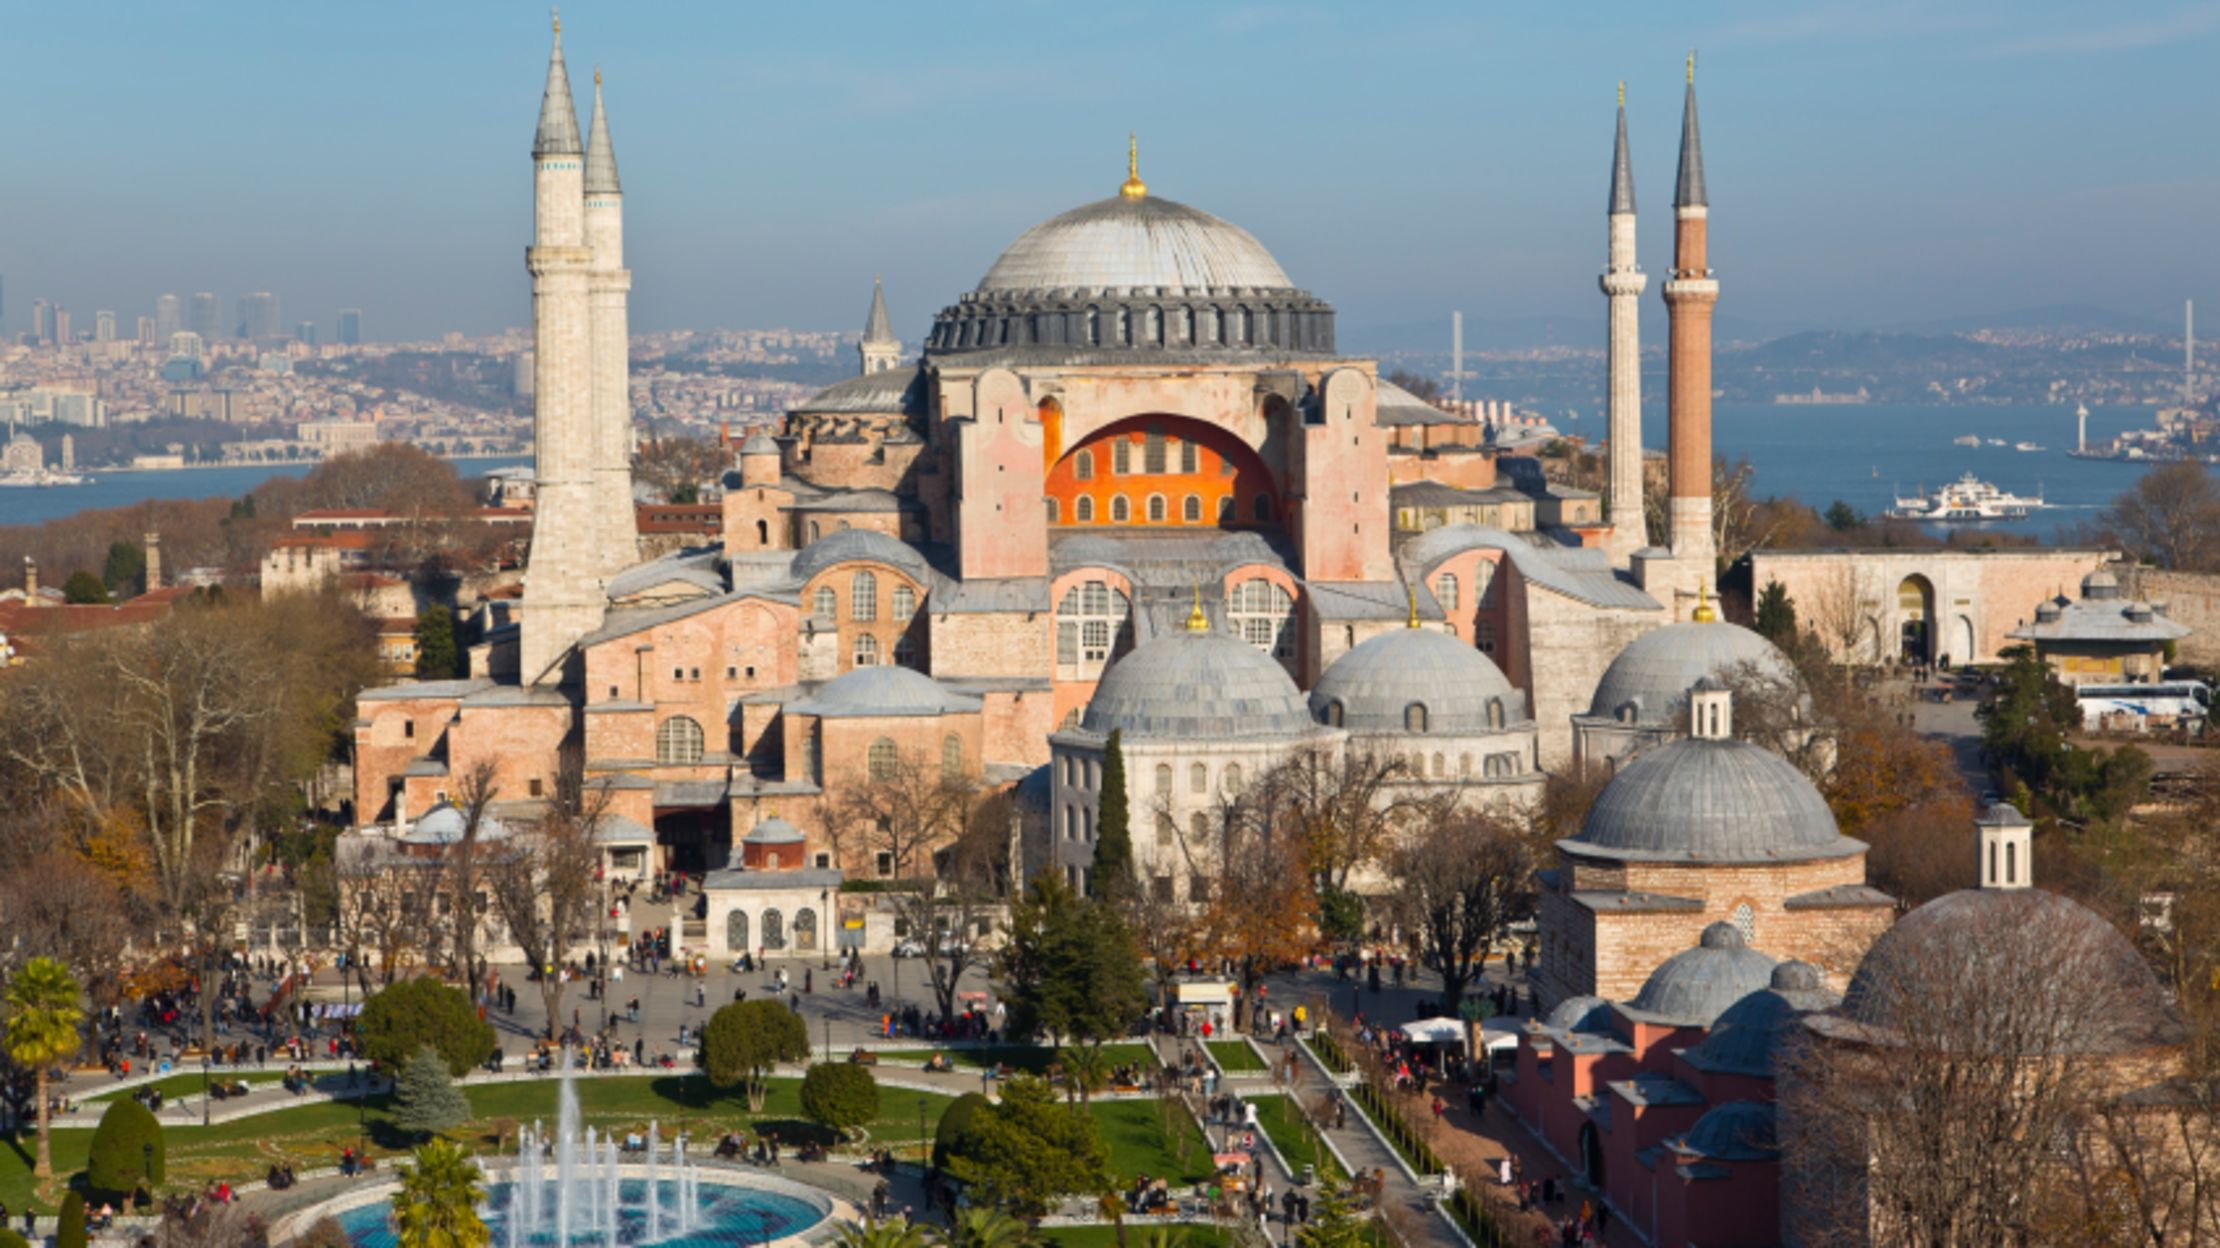 13 Sage Facts About The Hagia Sophia Mental Floss